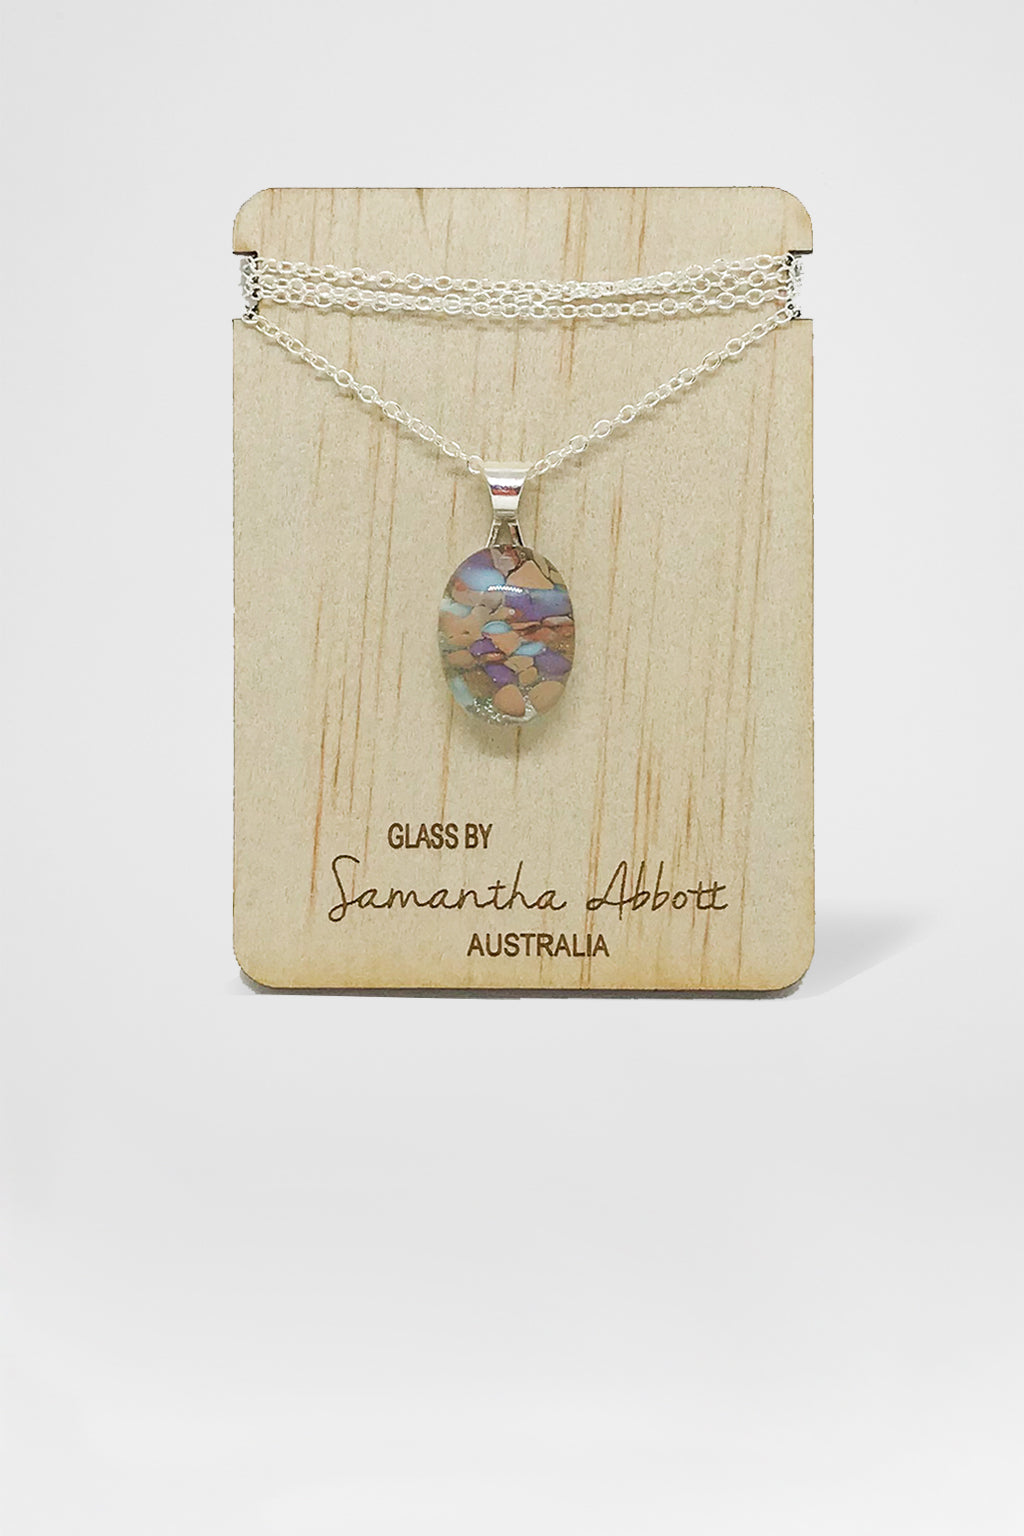 Samantha Abbott Glass-Glass Pendant Necklace - Lilac and Blue-Mott and Mulberry